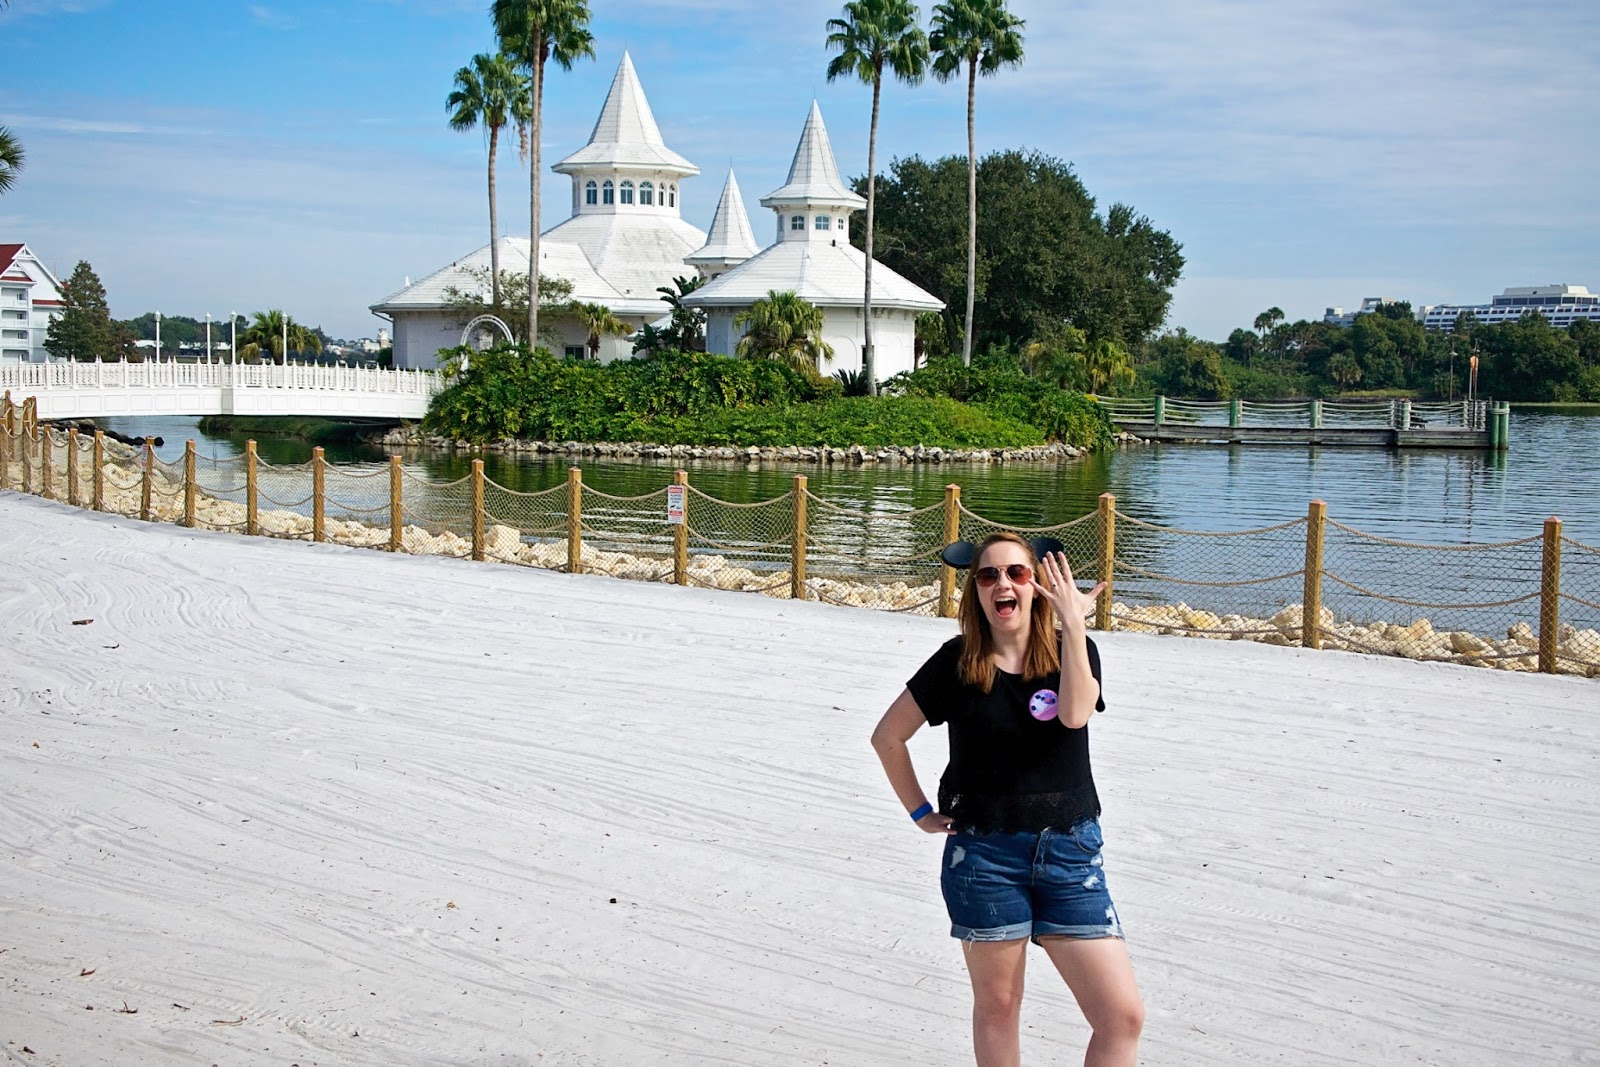 Engaged on the beach at Walt Disney world Wedding Pavilion